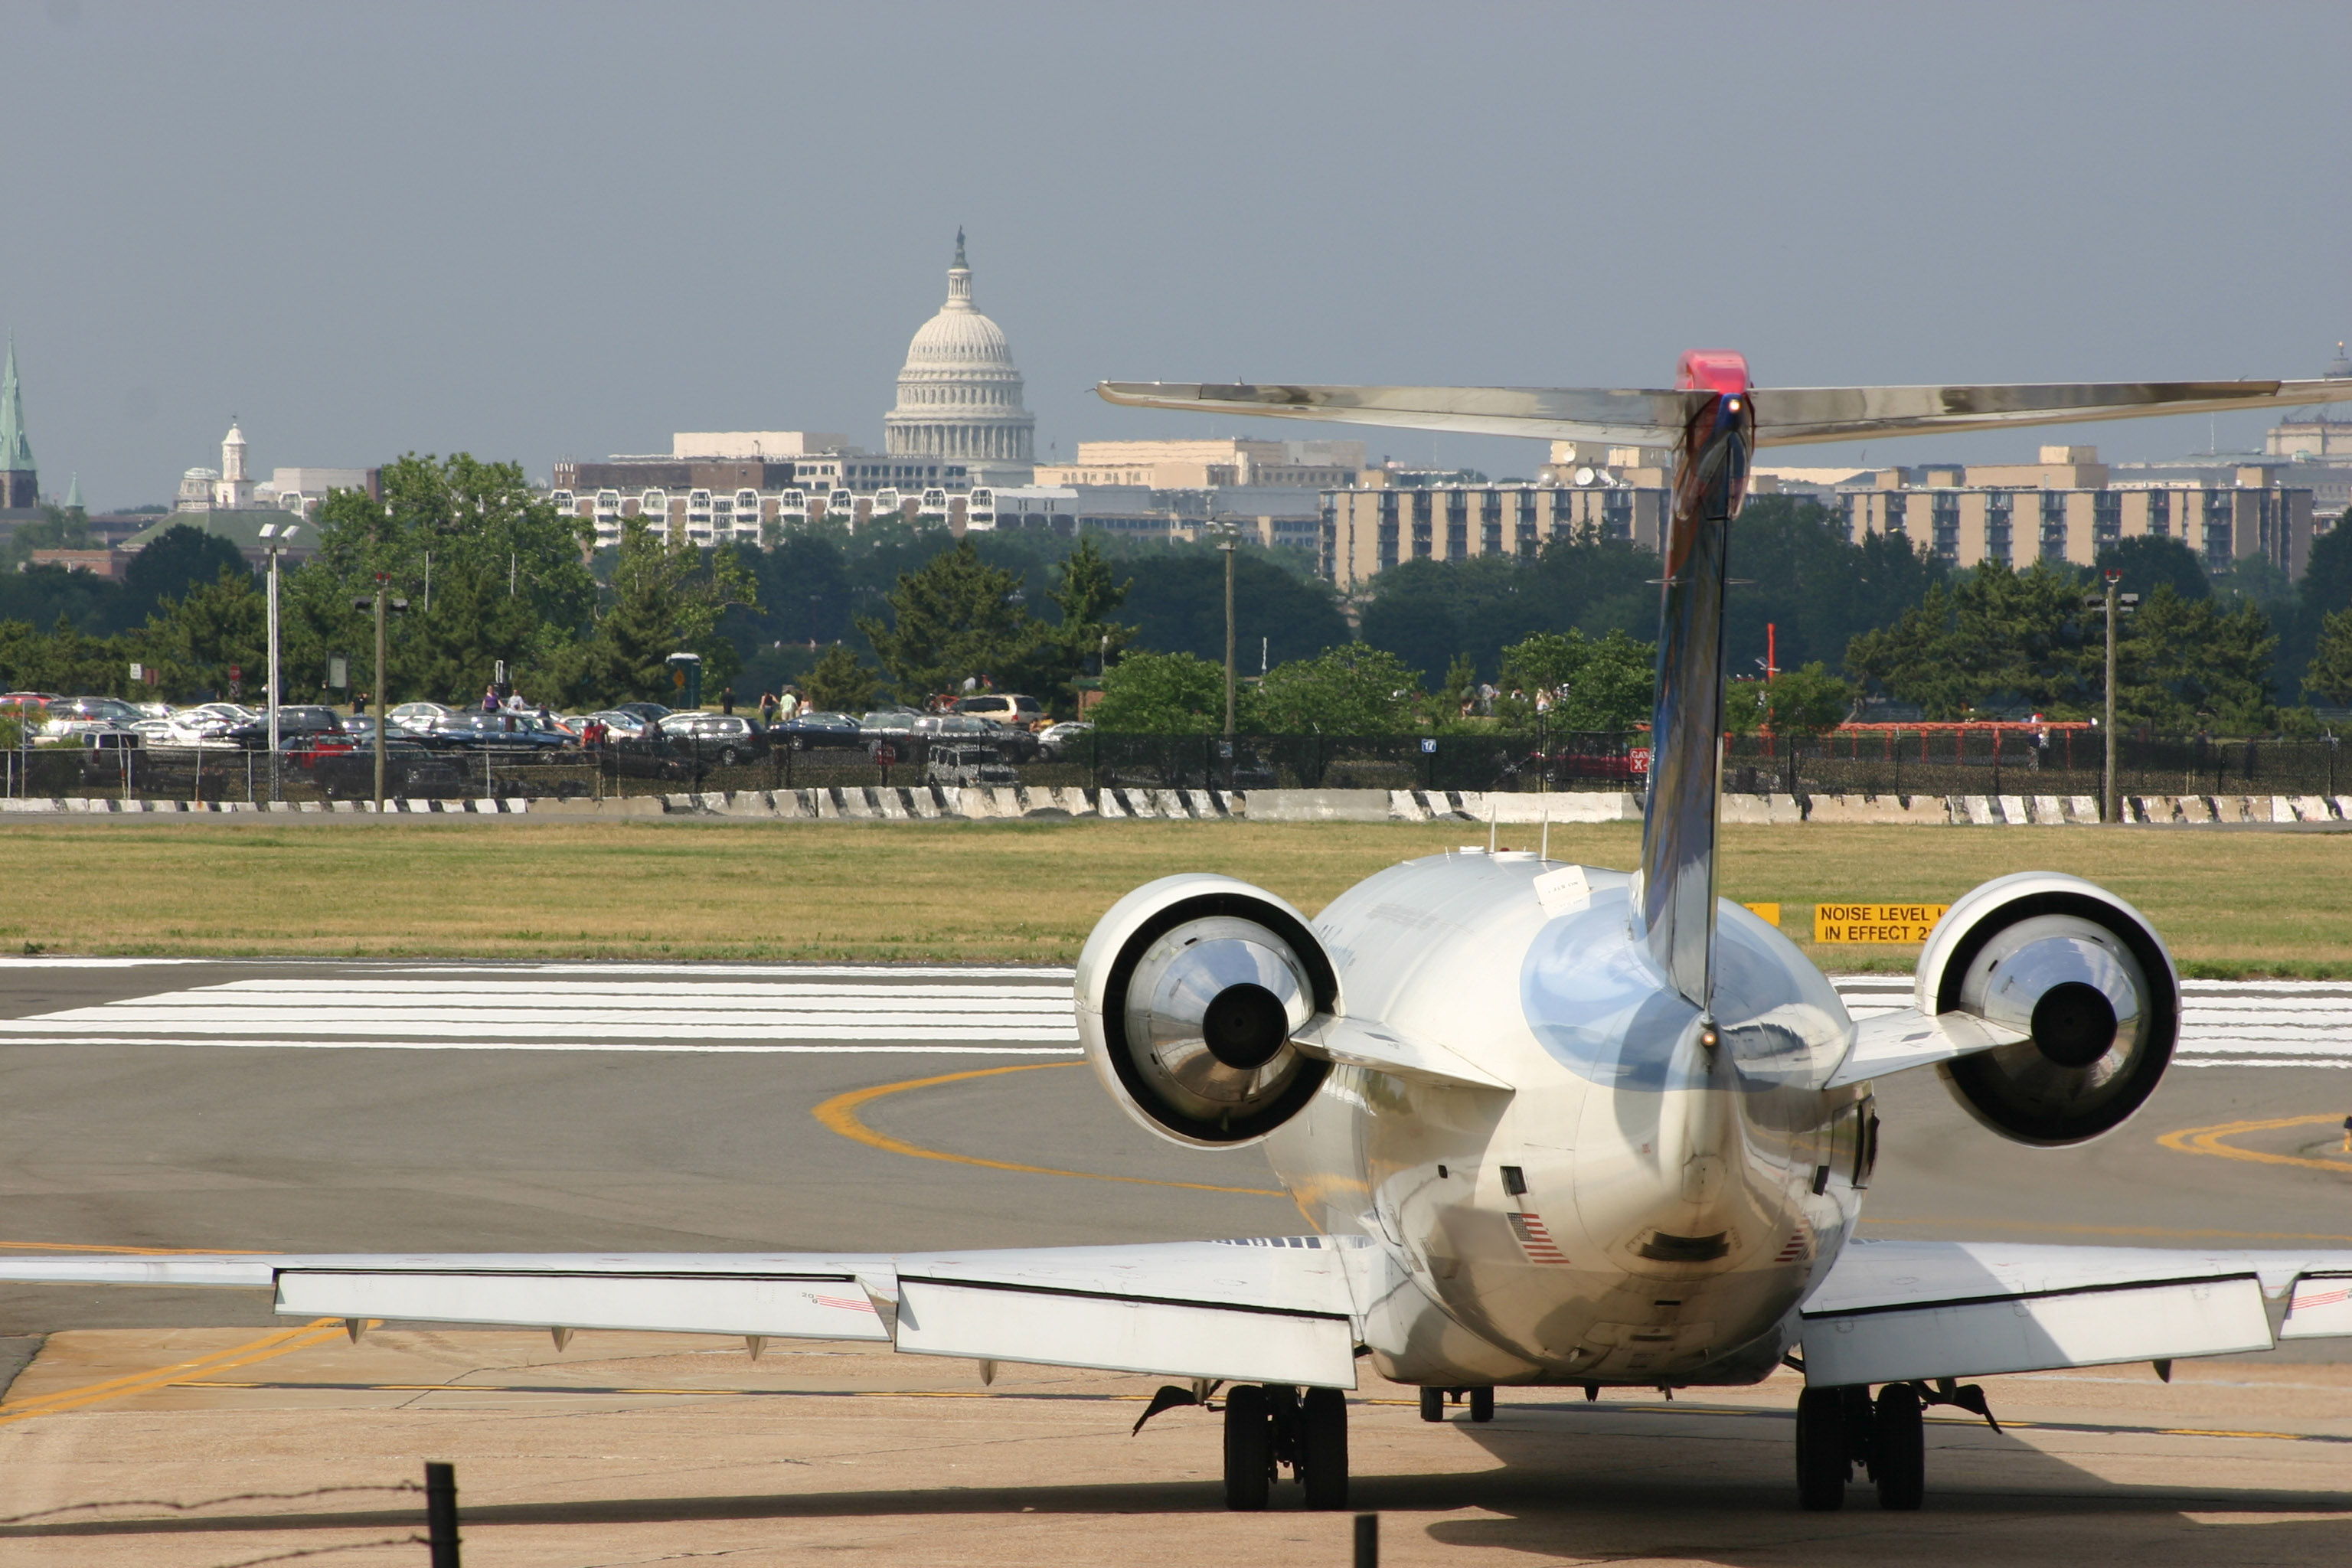 Maryland Claims Faa Violated Federal Laws In Rerouting Jets